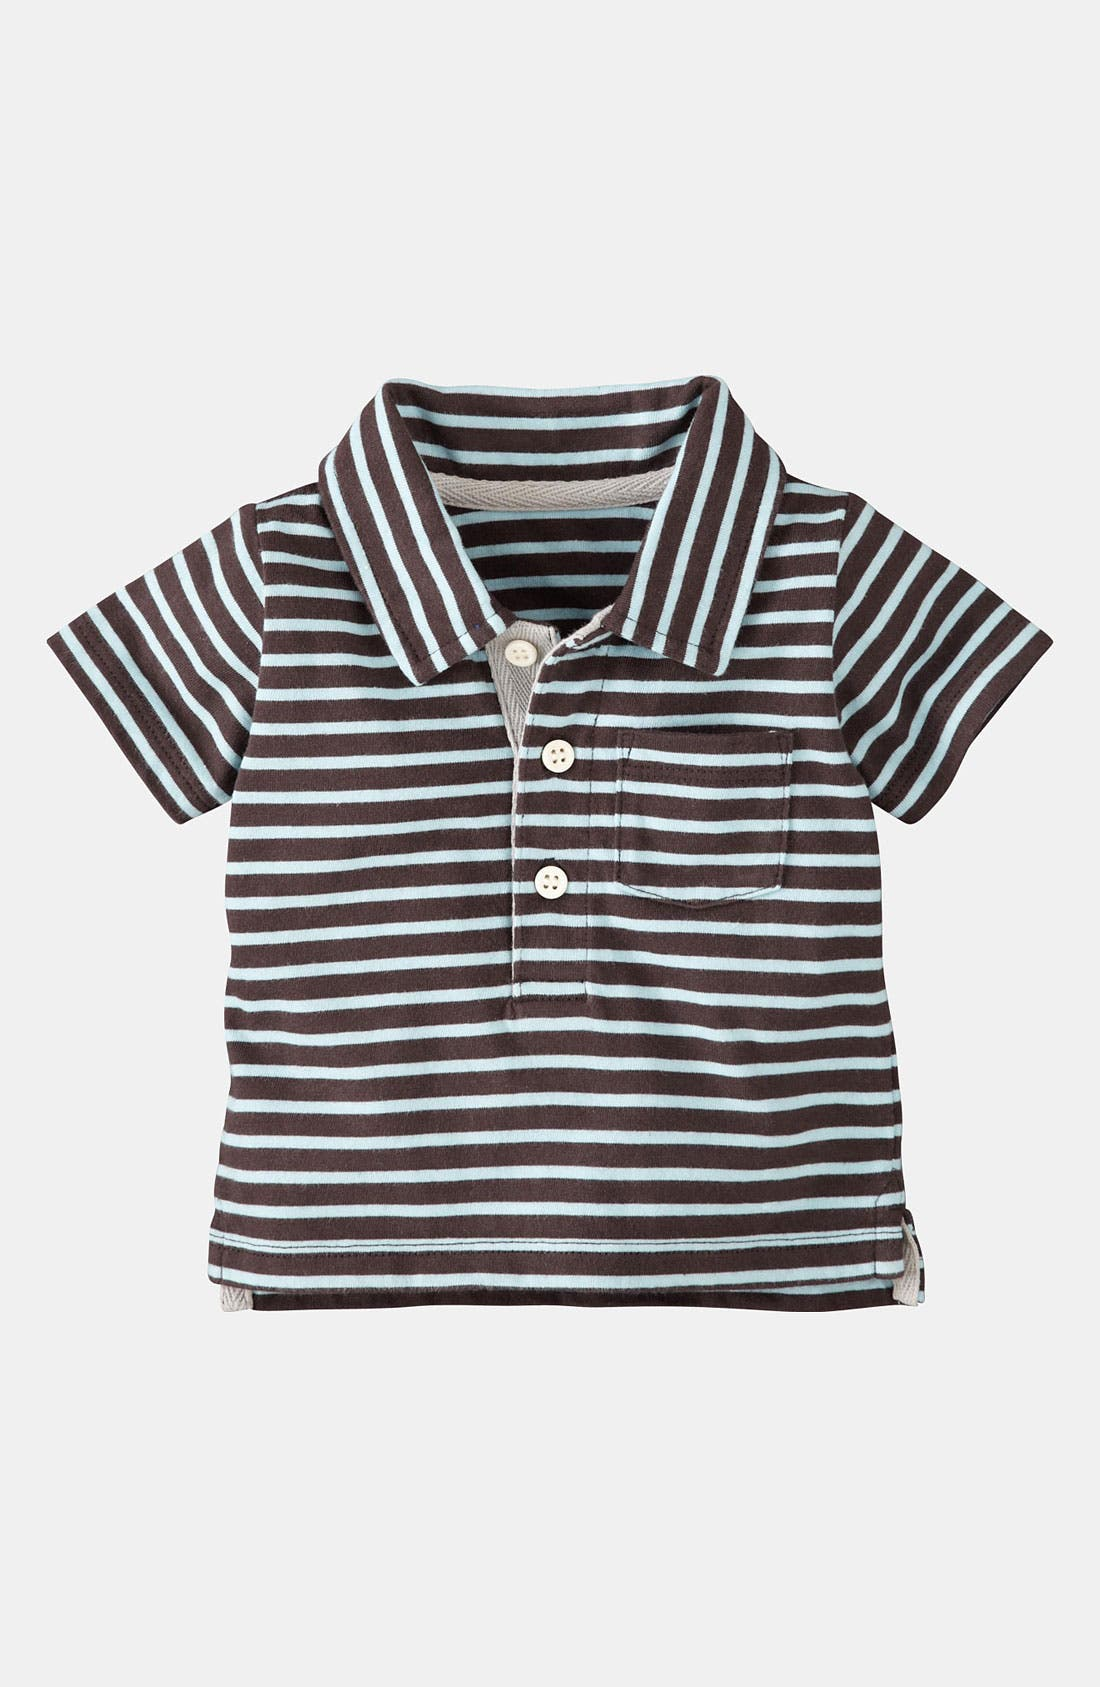 Main Image - Mini Boden 'Baby' Polo (Infant)